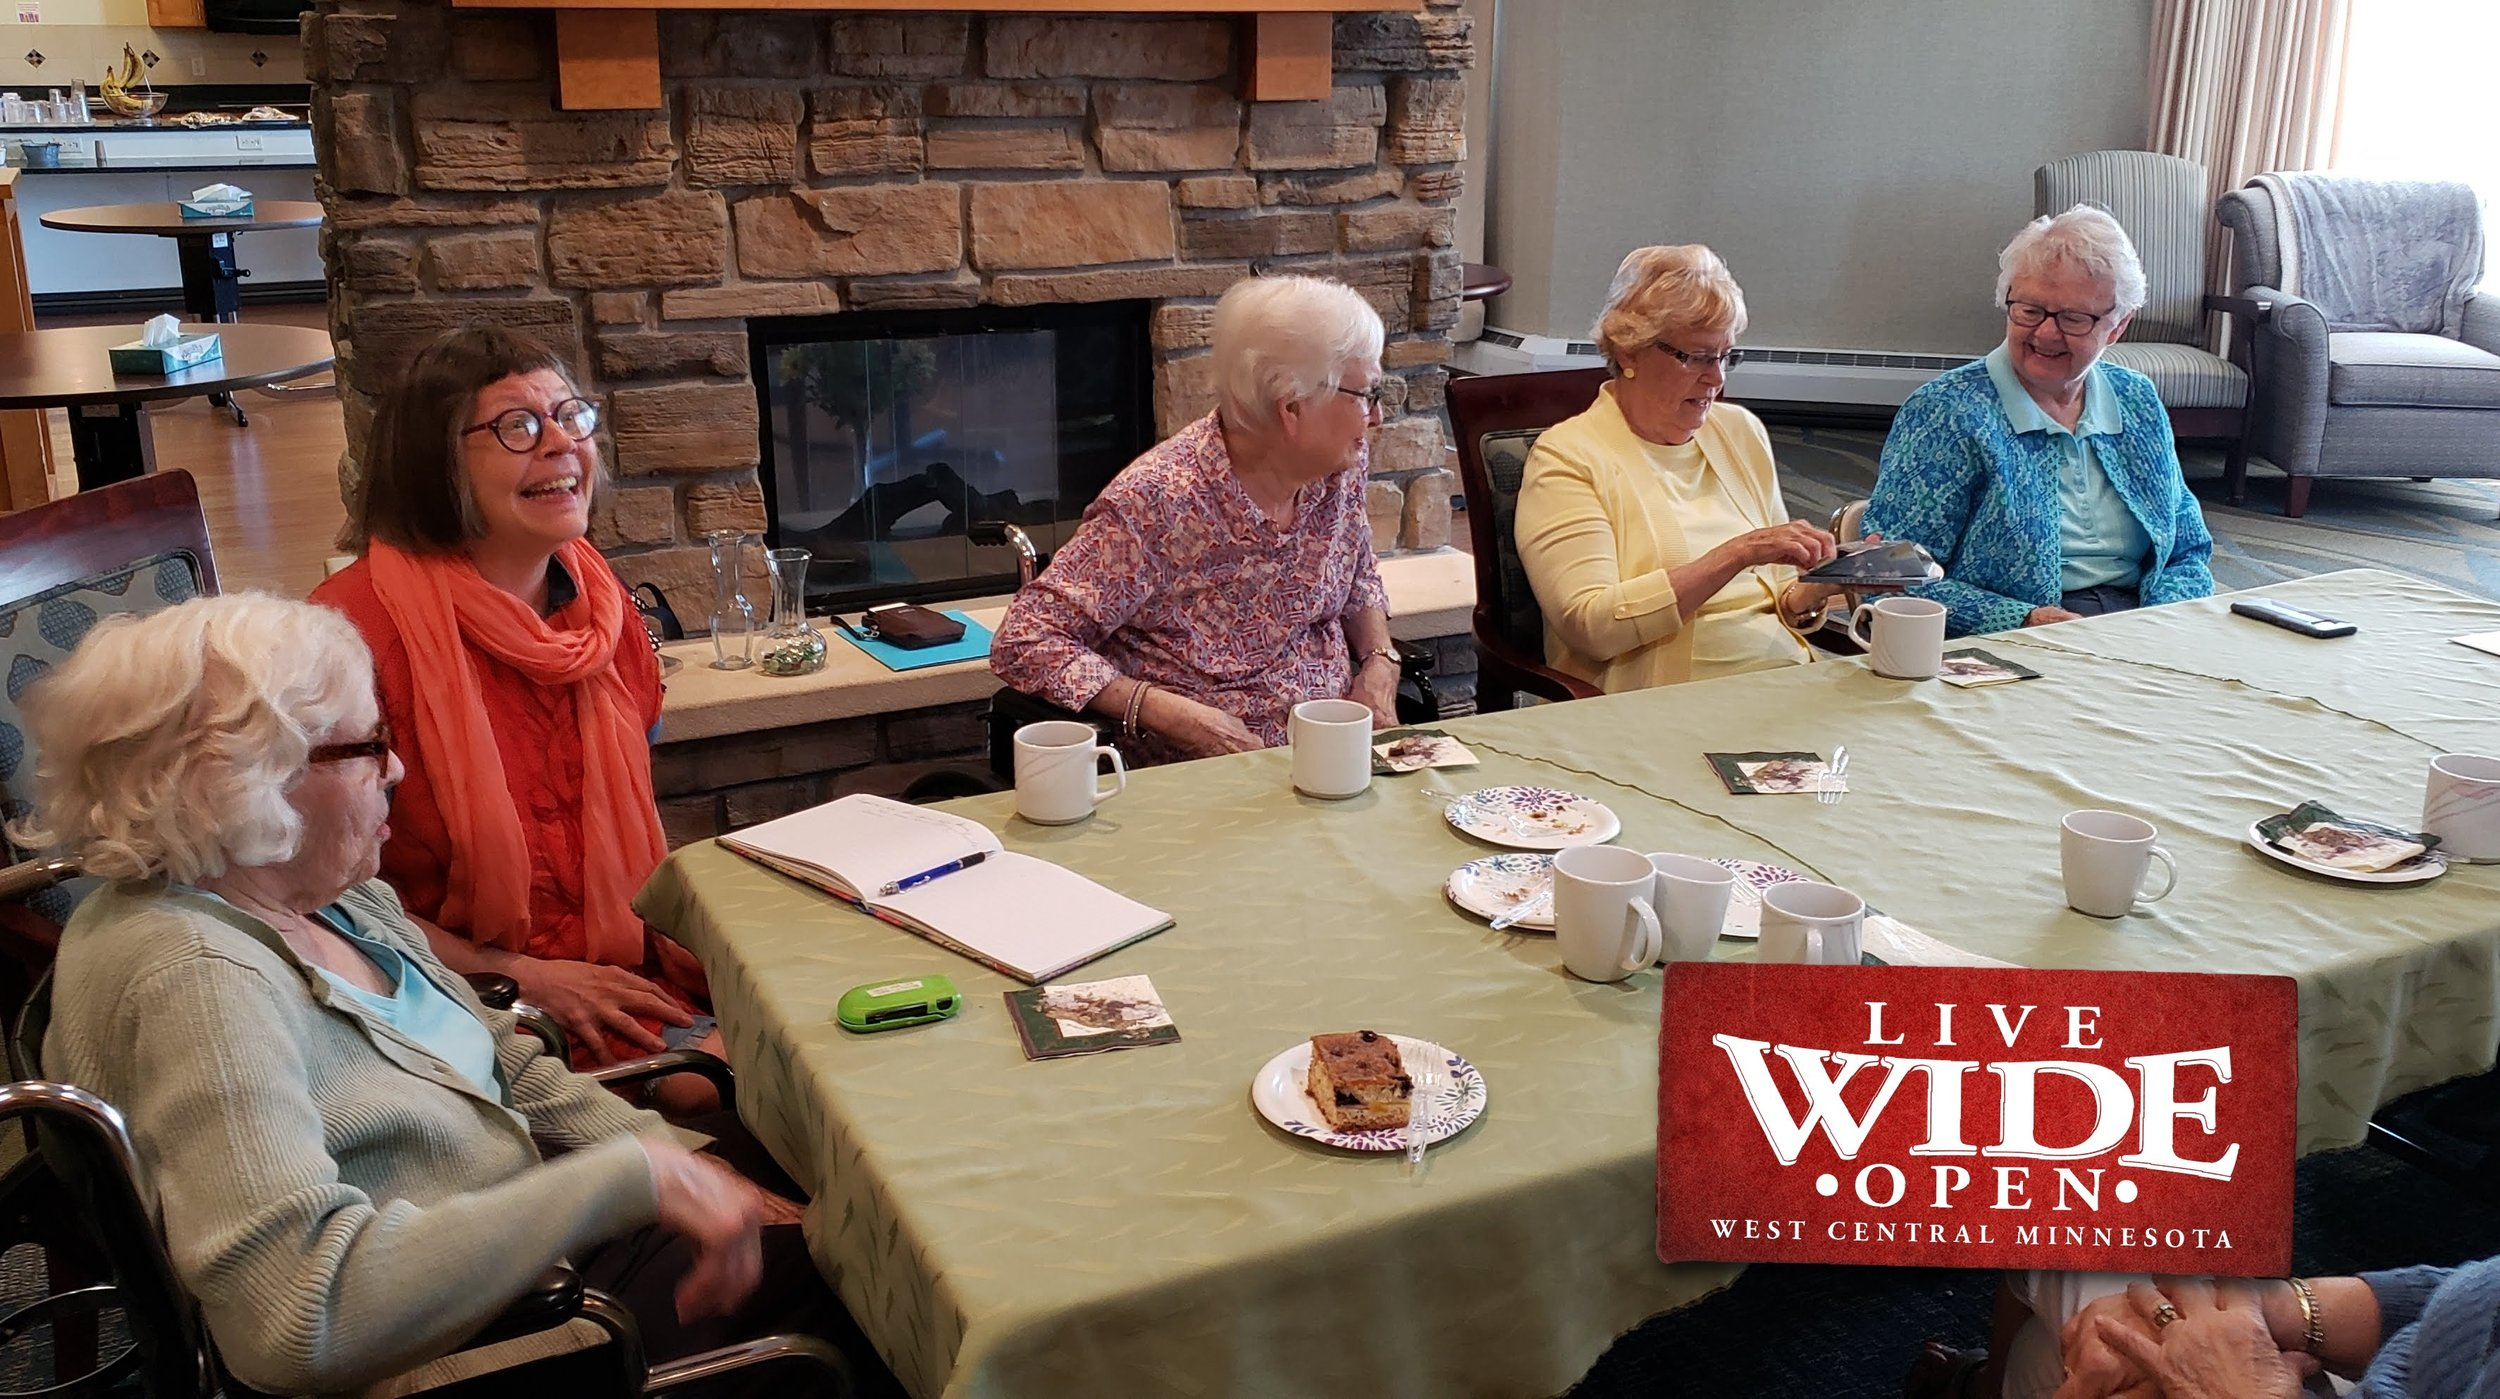 Why not bring coffee hour to the people, rather than bringing the people to the coffee? When friends ended up in assisted living, it was easier to gather there.